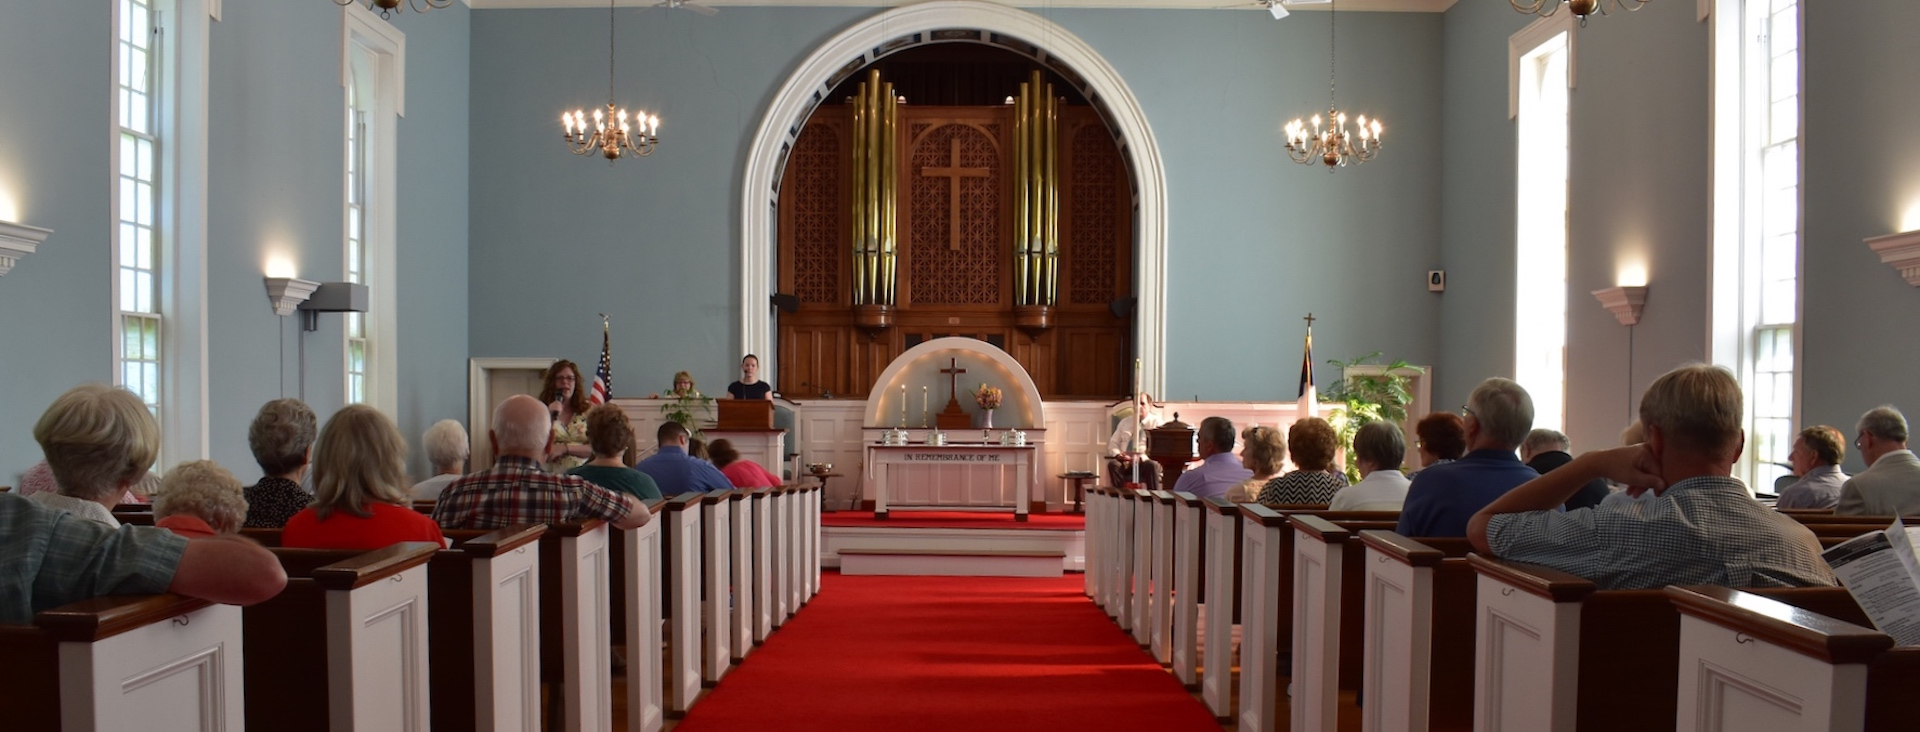 1528907790_First Congregational Church - Interior Banner 1 Final.jpg